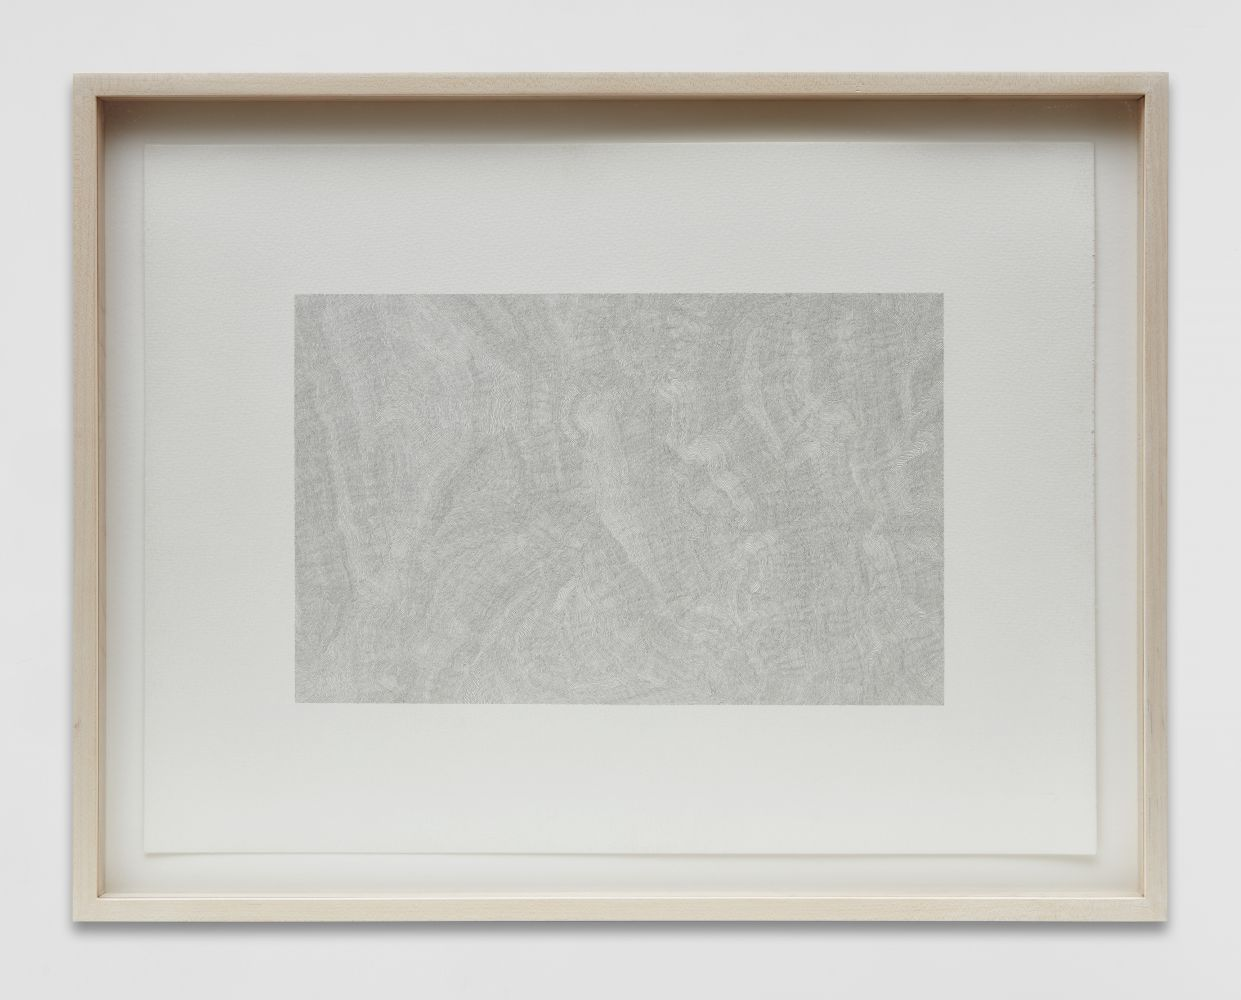 Linear Scenery, 2004-05, with frame